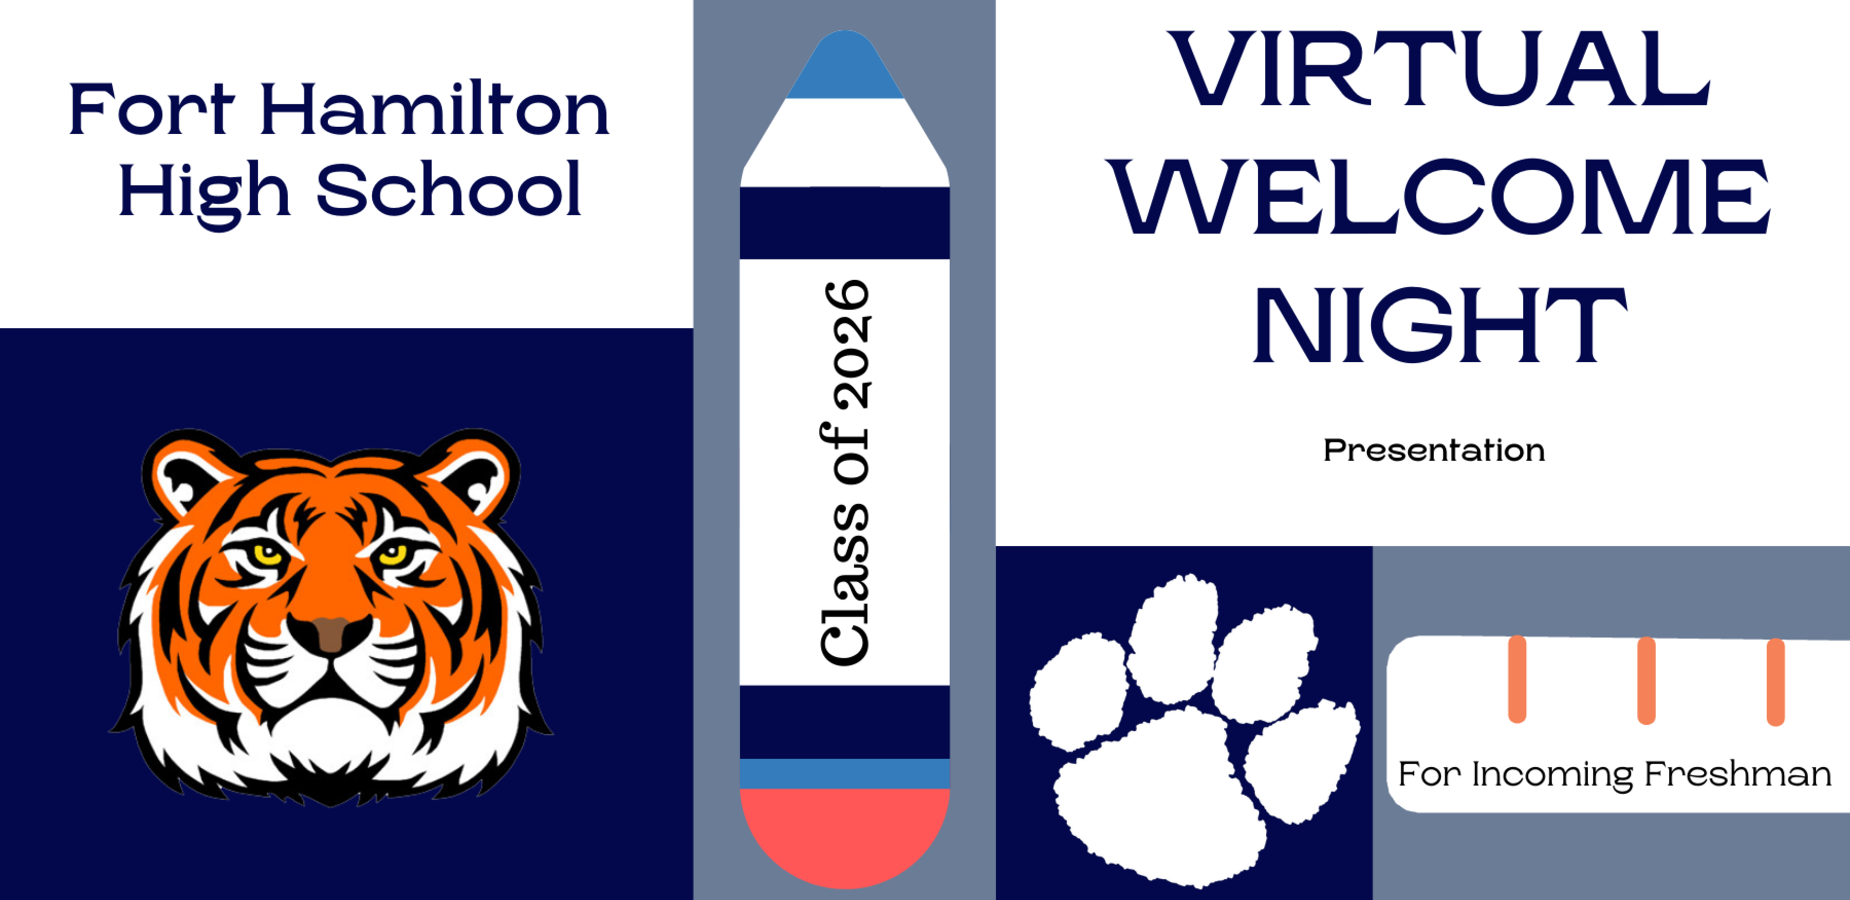 Fort Hamilton High School. Virtual Welcome Night. June 22, 2021, 6:00 pm to 8:00 pm. For Incoming Freshman. A pencil down the middle has Class of 2026 in the center. A tiger on the left and a pawpring to the right.